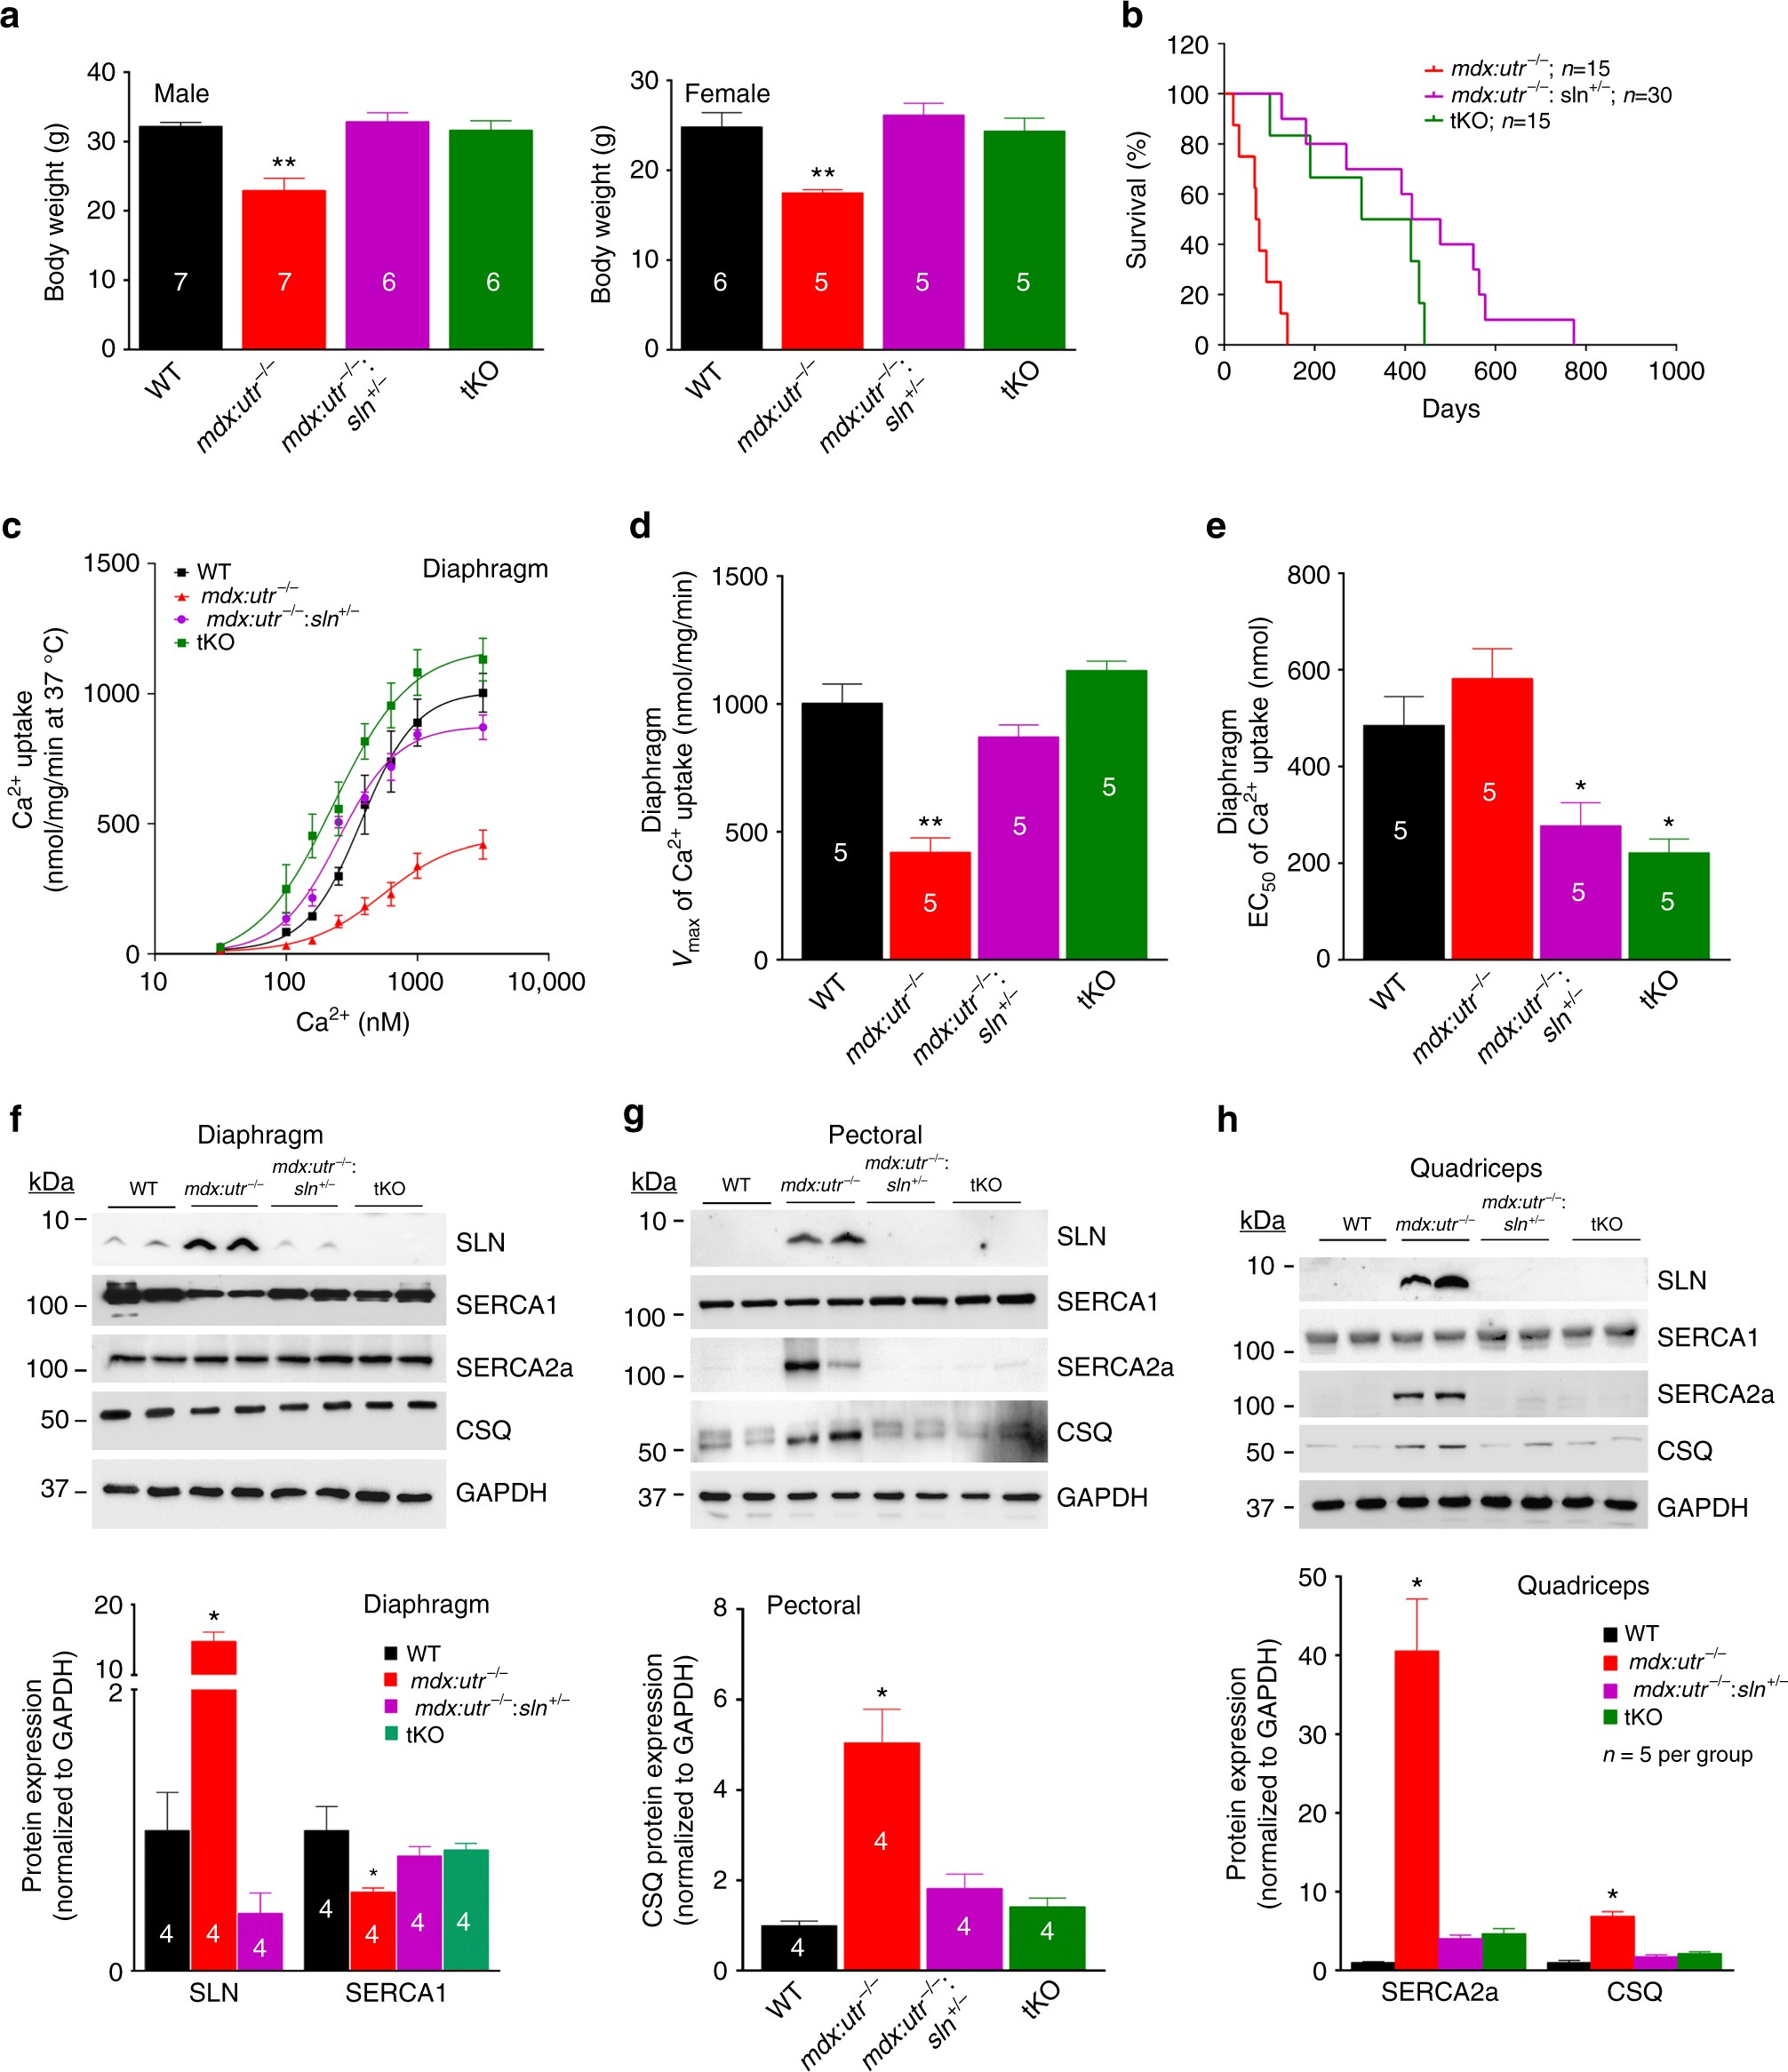 Reducing sarcolipin expression mitigates Duchenne muscular dystrophy and  associated cardiomyopathy in mice   Nature Communications